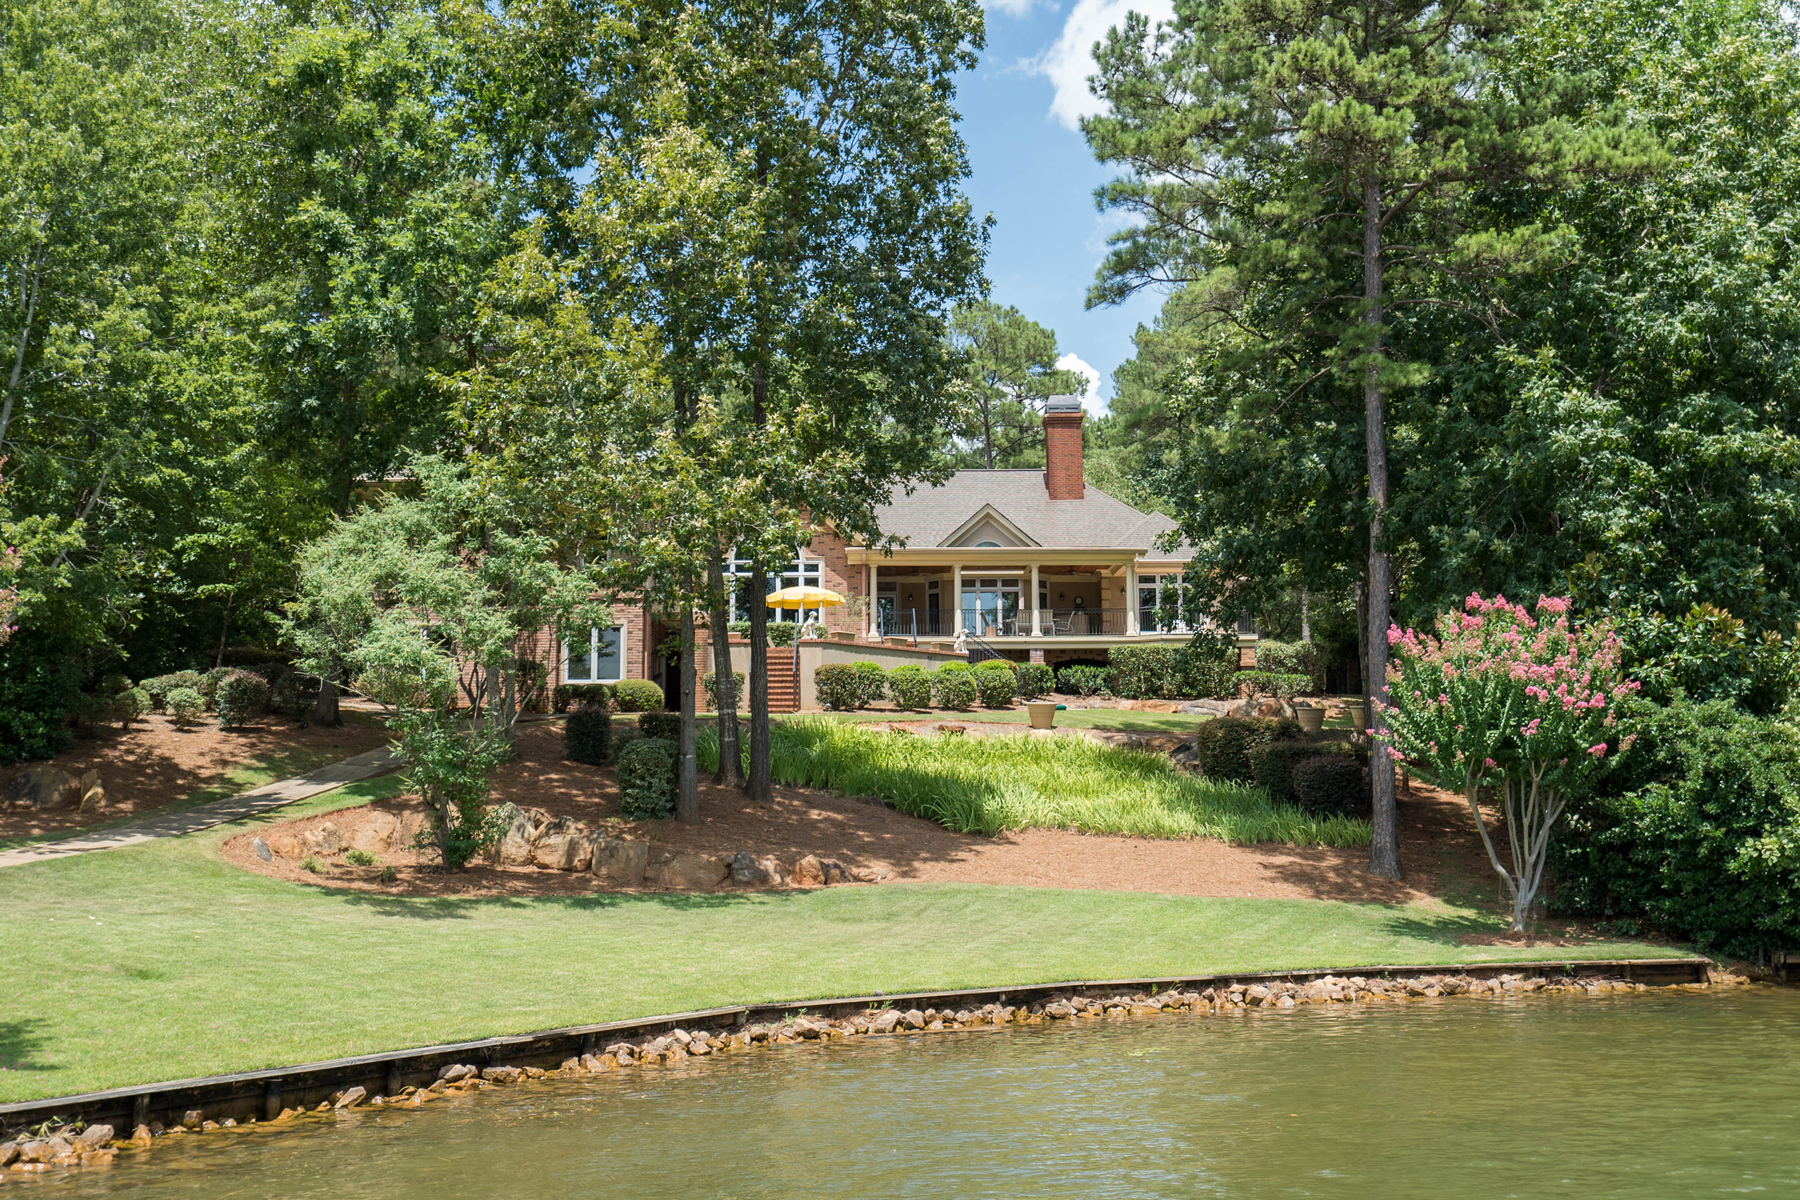 Single Family Home for Active at Gorgeous Custom Home On Lake Oconee 1020 Park House Lane Greensboro, Georgia 30642 United States